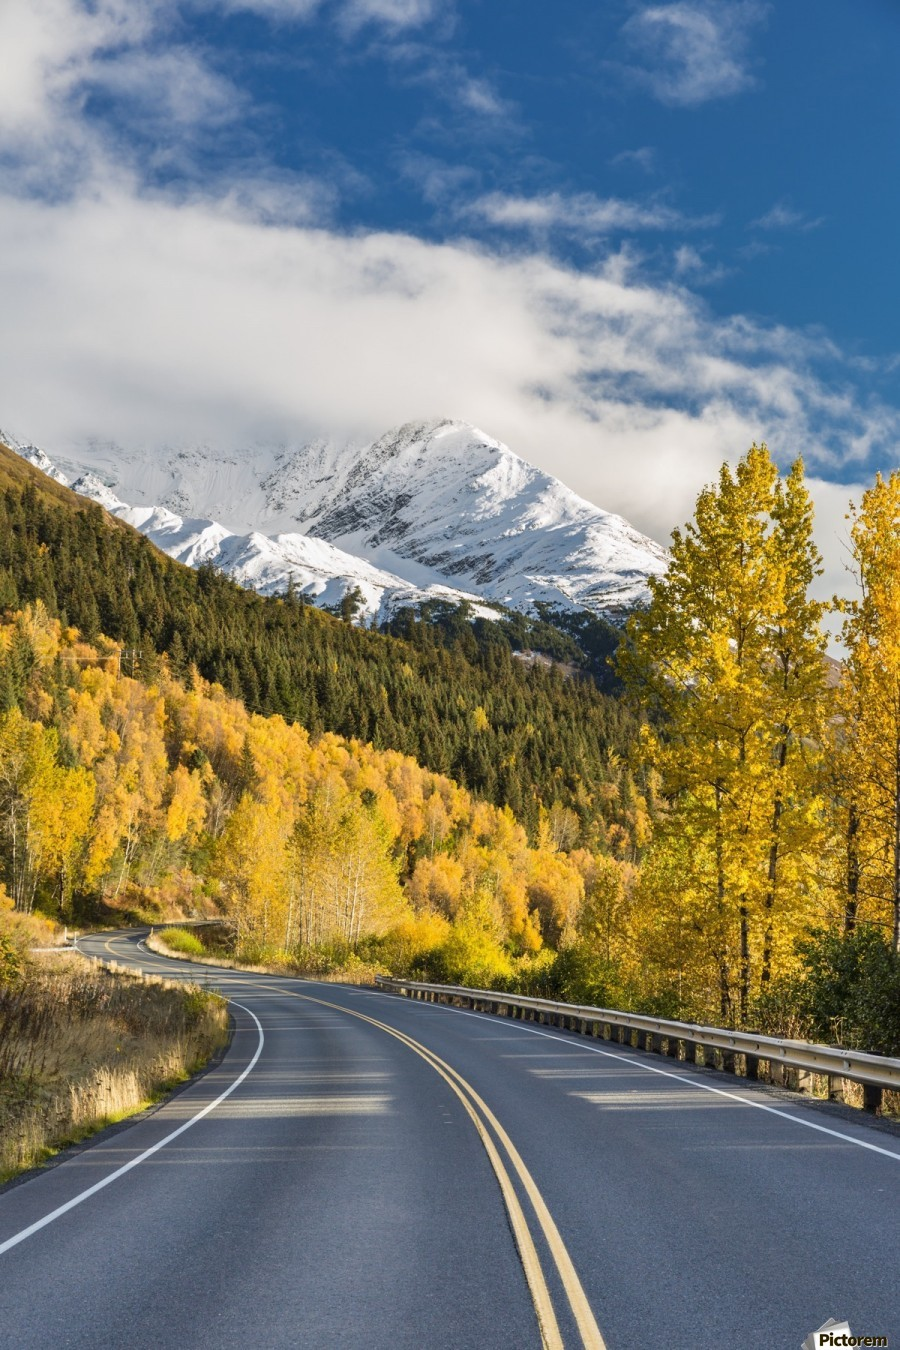 Snow-capped Kenai Mountains dwarf the Seward highway, trees covered in yellow leaves in autumn line the road, South-central Alaska; Seward, Alaska, United States of America  Print